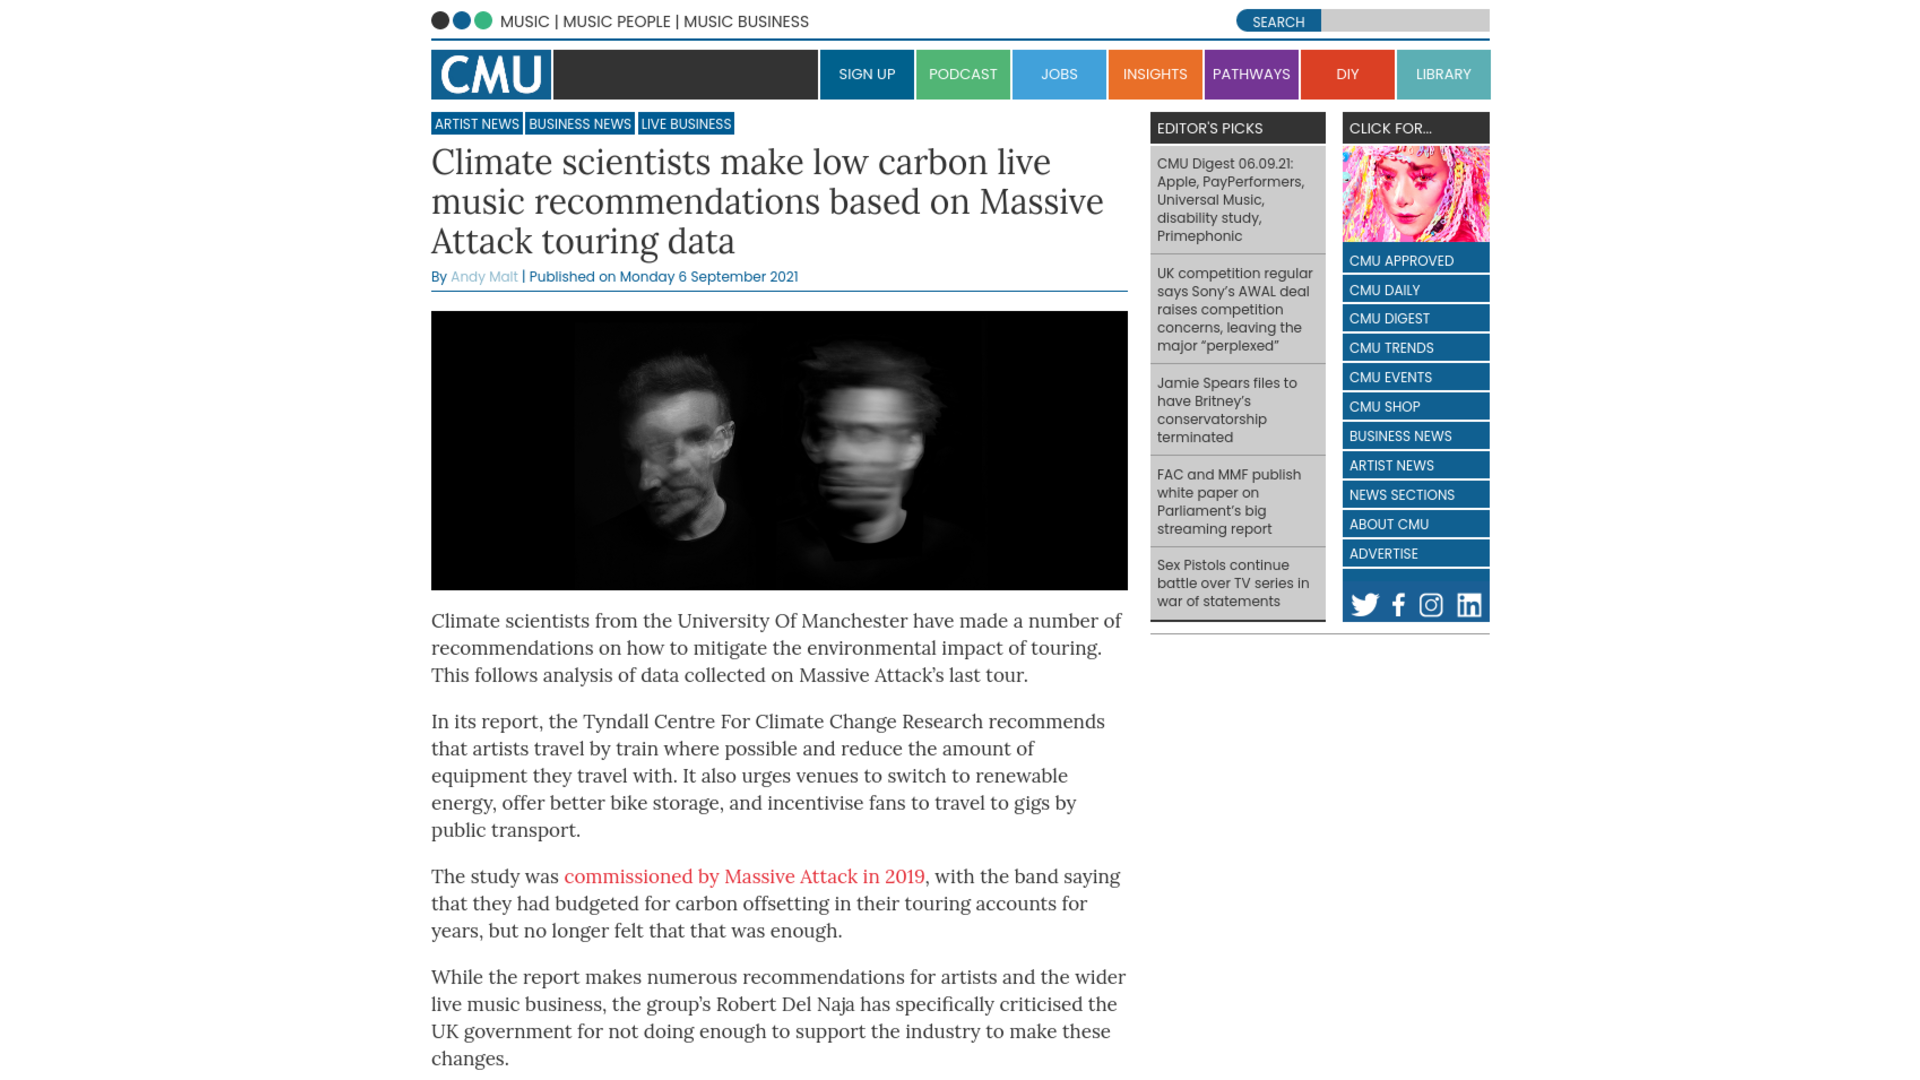 Fairness Rocks News Climate scientists make low carbon live music recommendations based on Massive Attack touring data